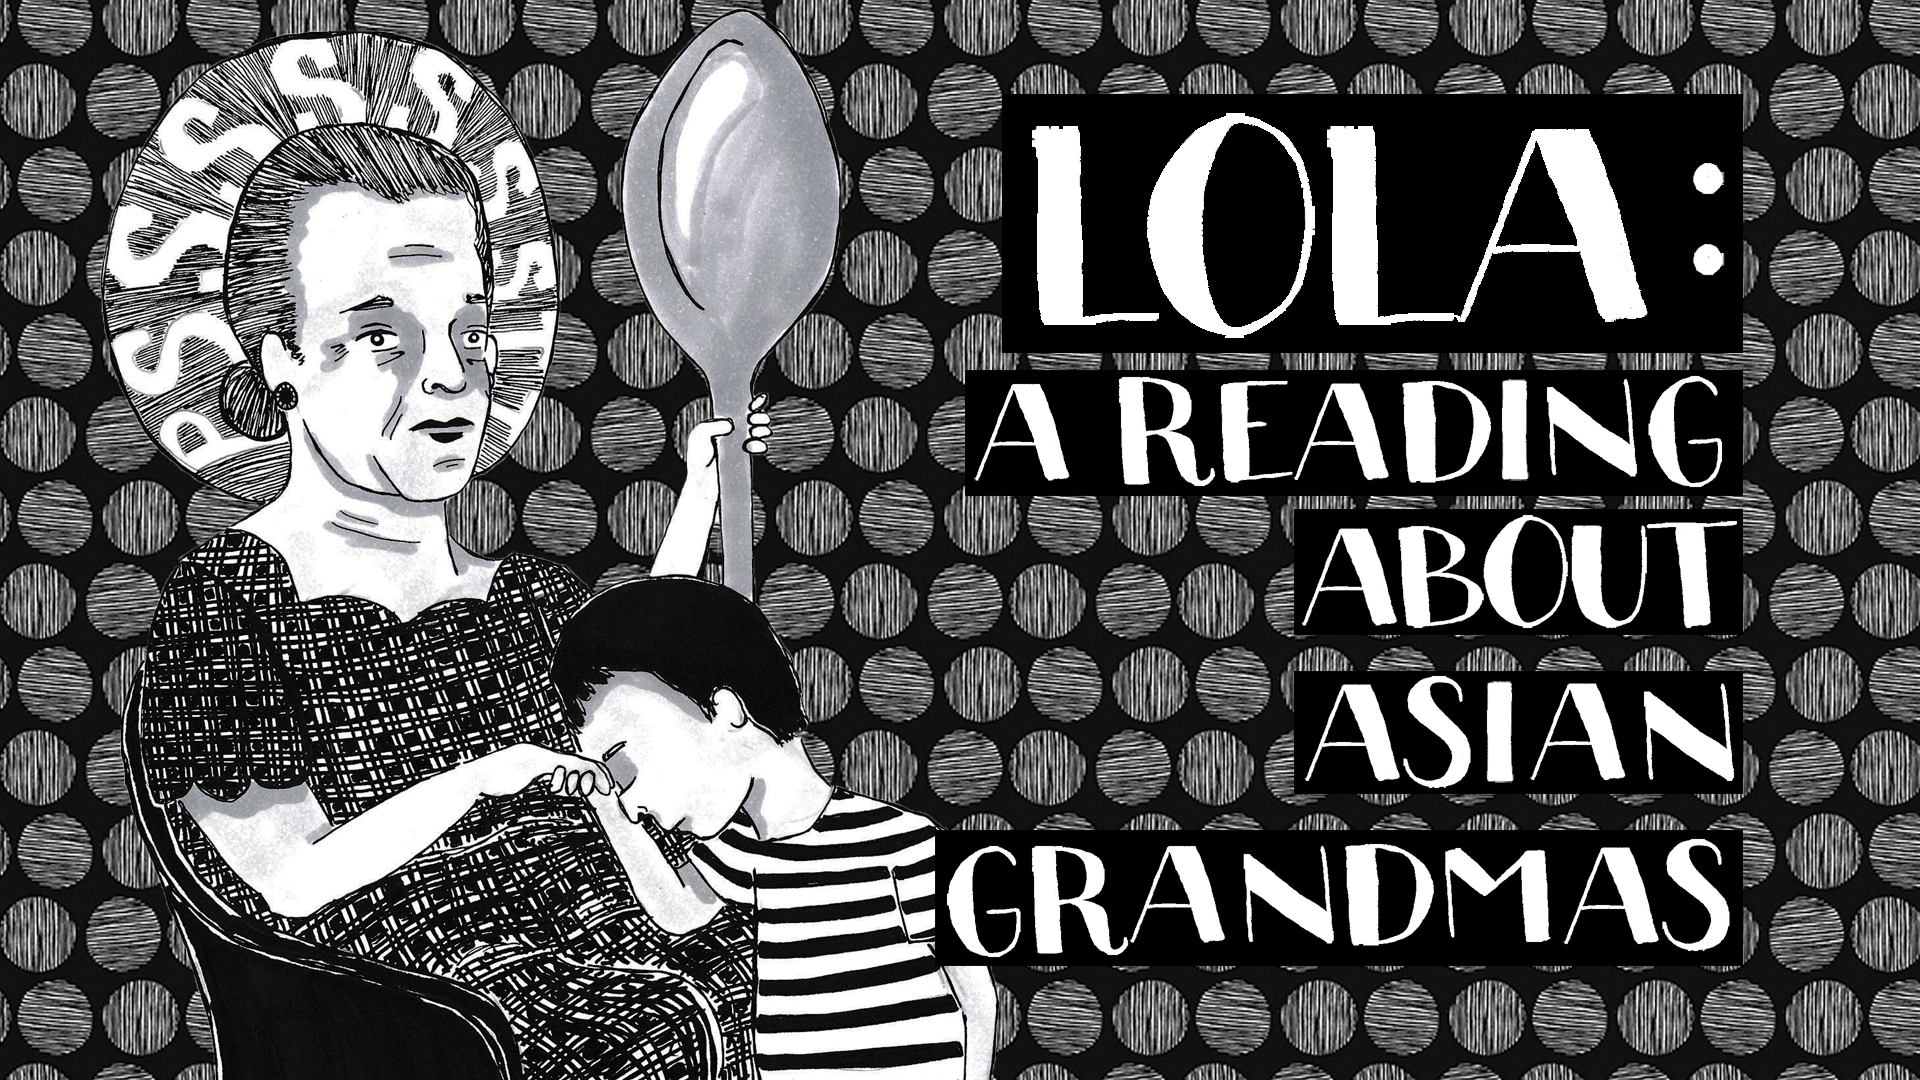 Lola: A Reading About Asian Grandmas